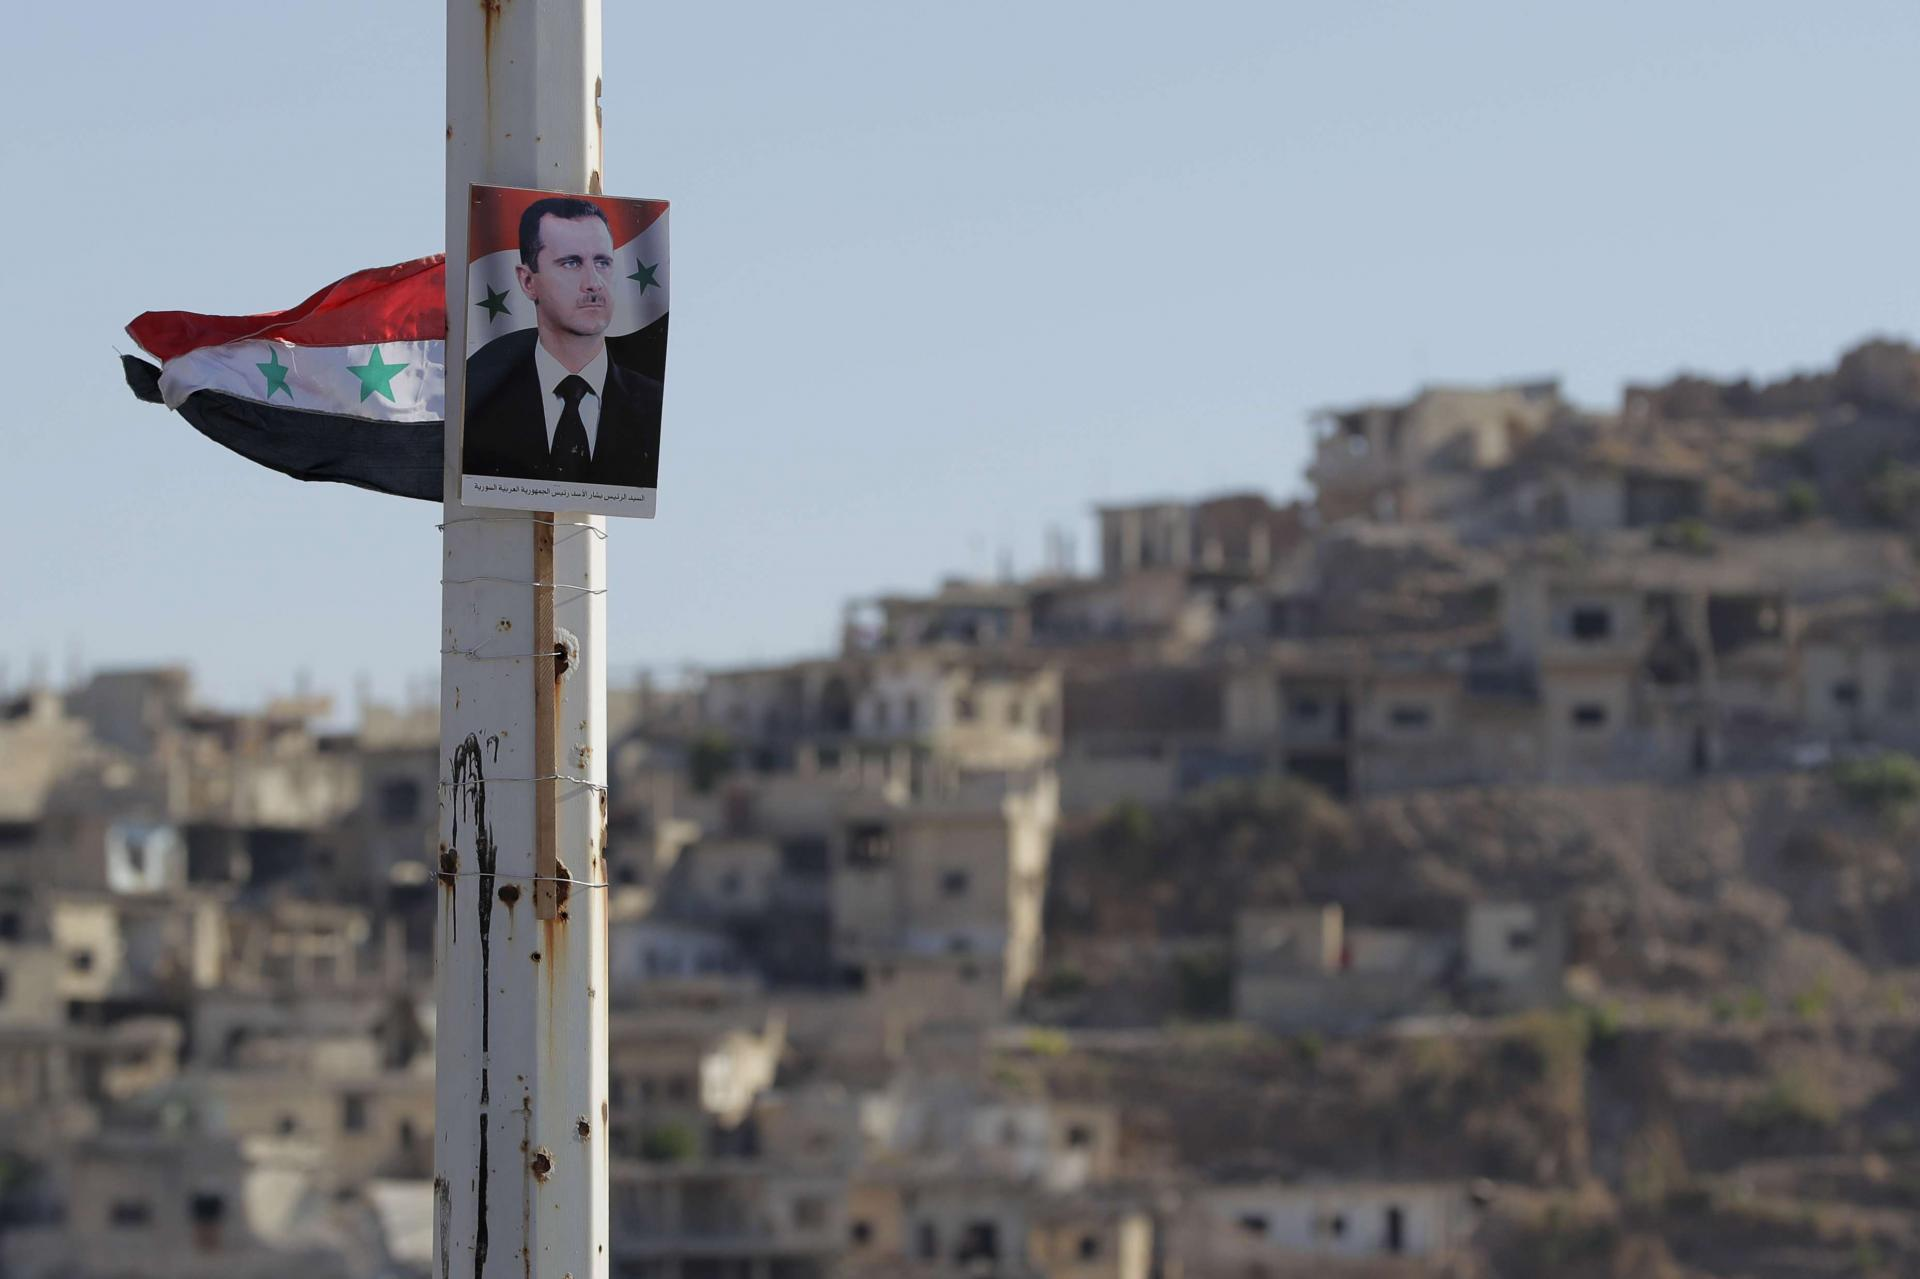 Syrian President Bashar Assad is a serial war criminal - but the US has talked with other leaders in that category.